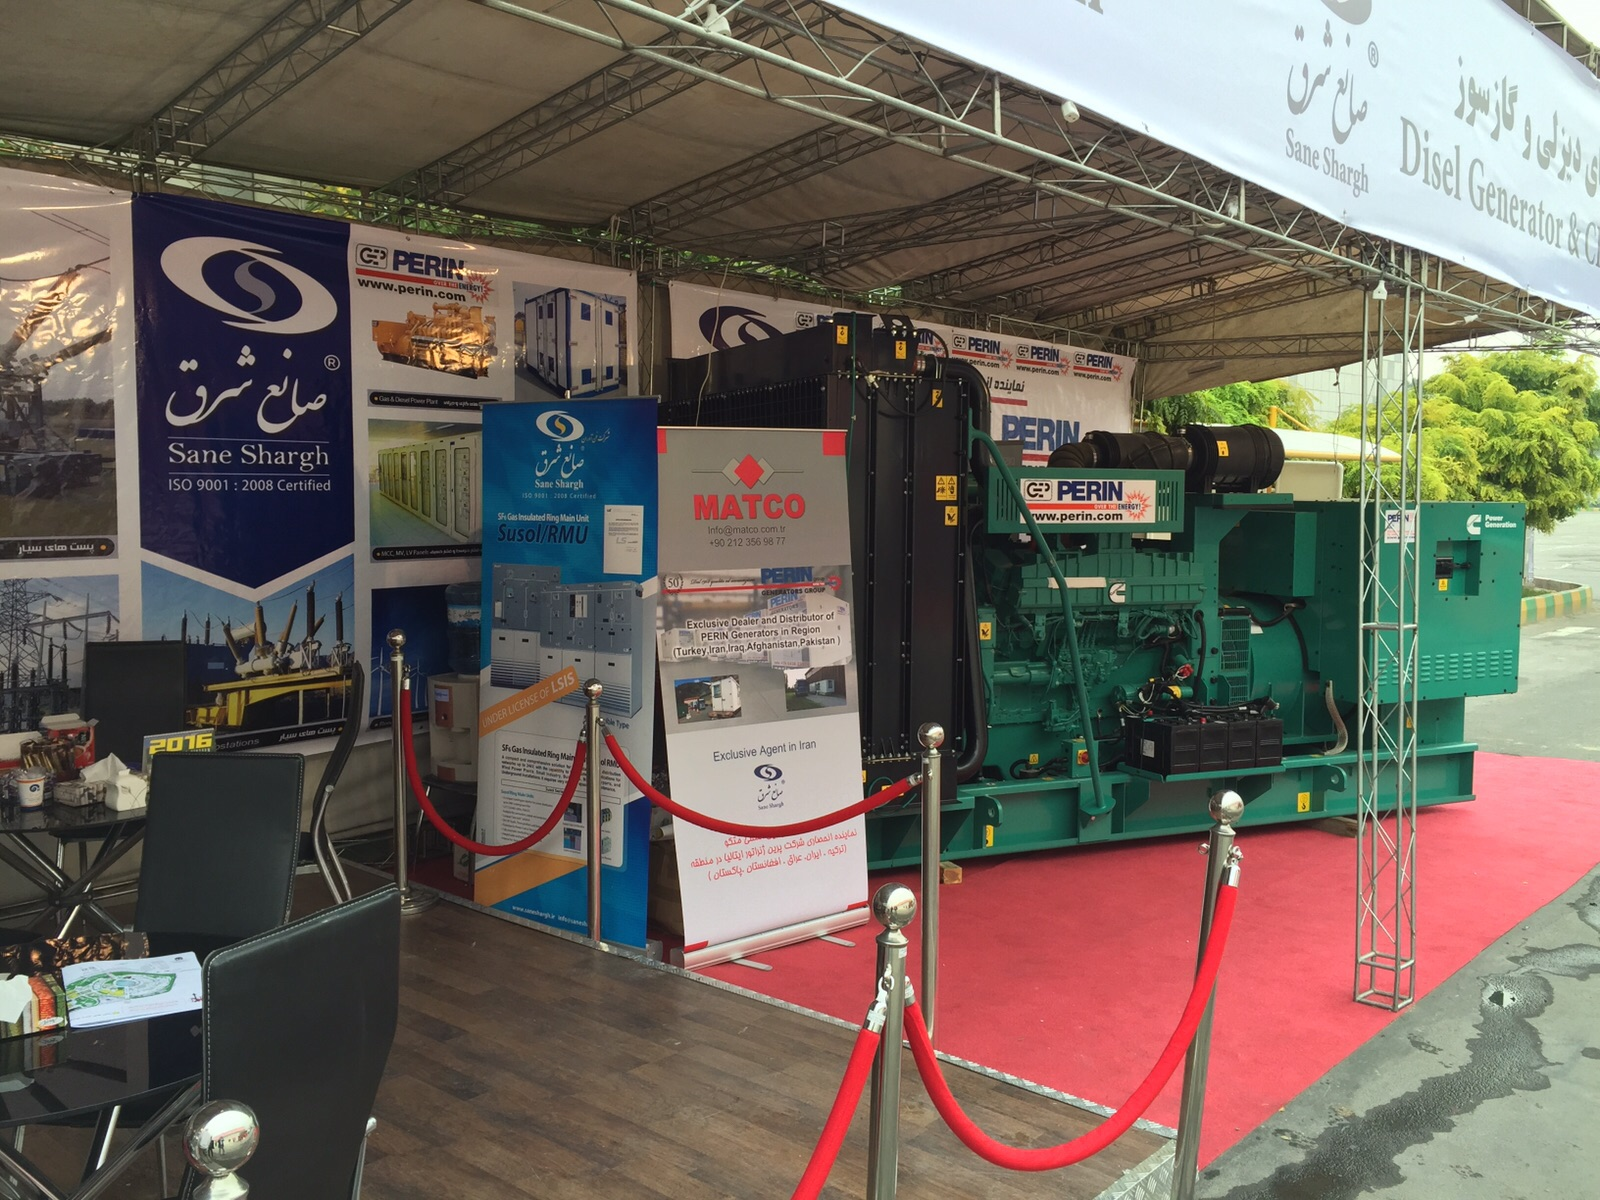 Exhibition Stand Trends 2018 : Peringenerators group at iee international electricity